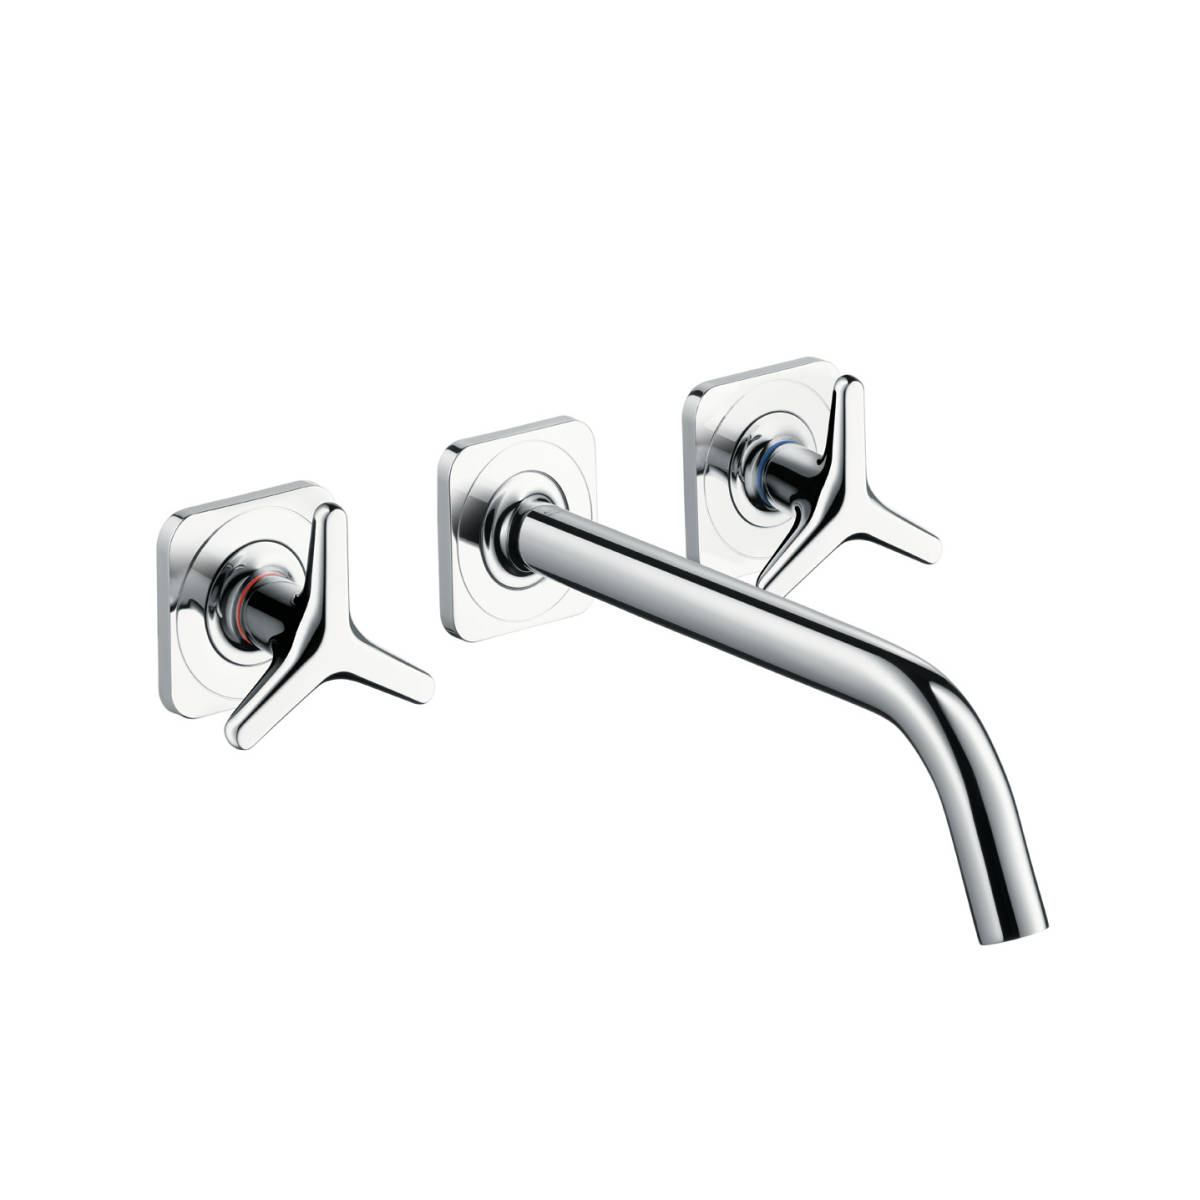 3-hole basin mixer for concealed installation wall-mounted with spout 226 mm, star handles and escutcheons, Chrome, 34217000